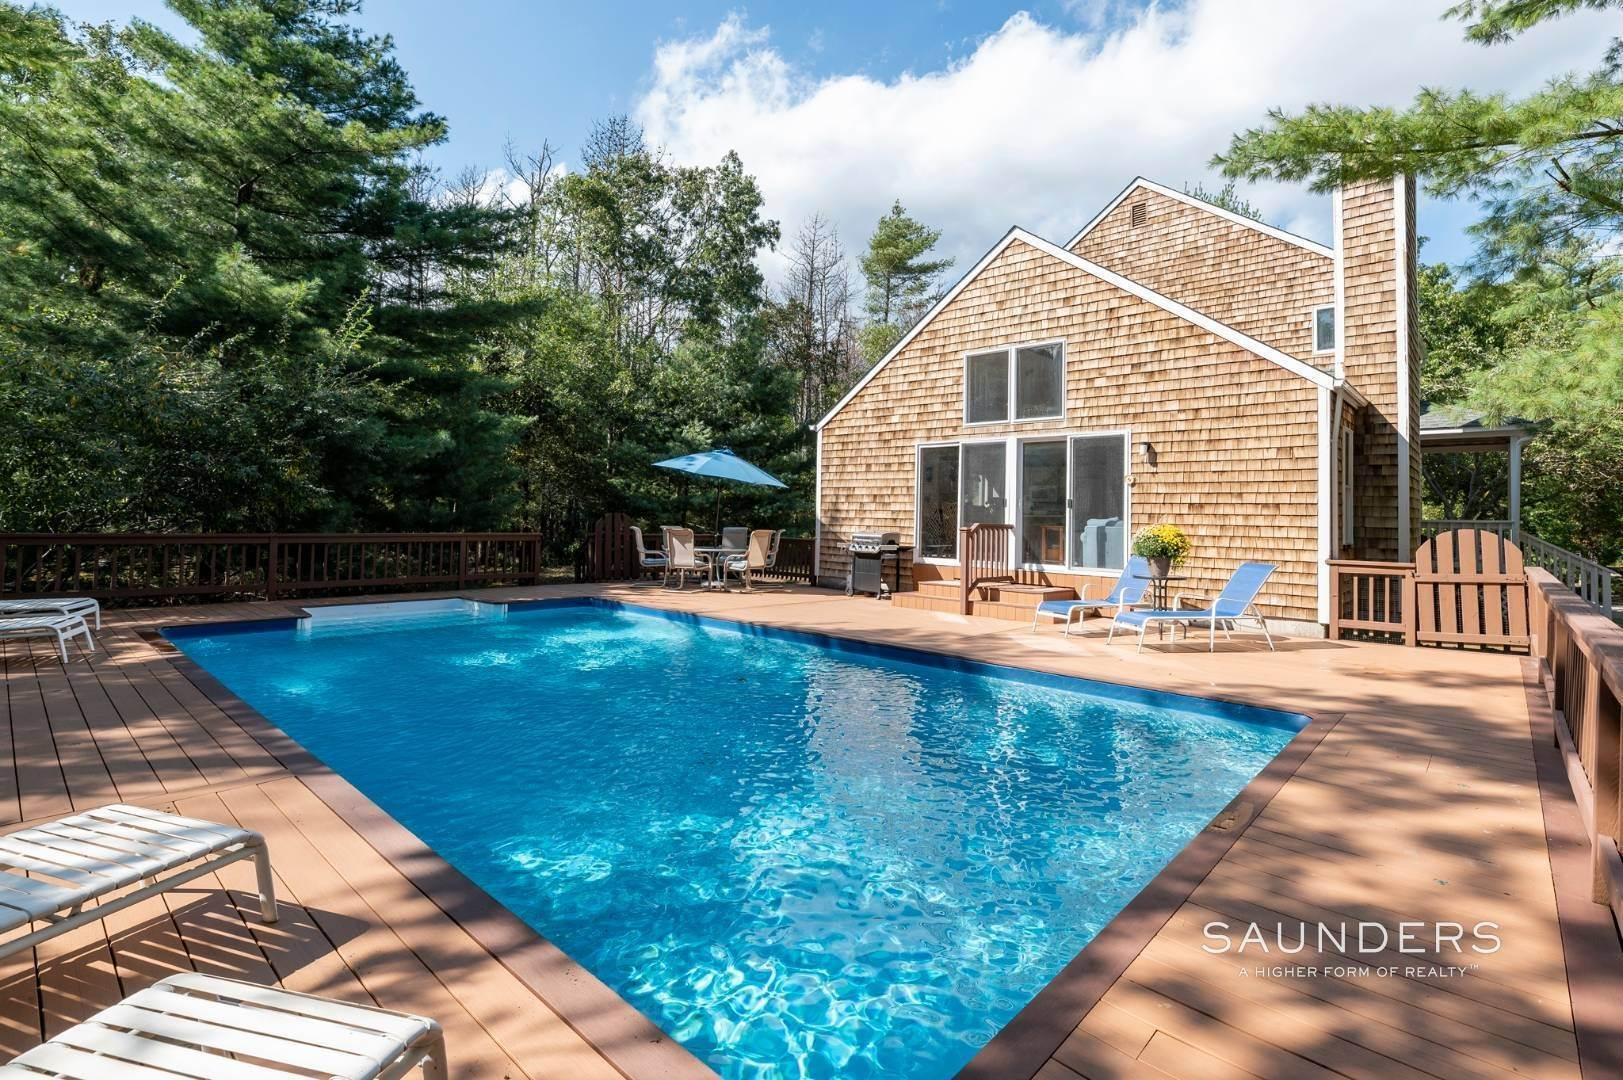 3. Single Family Homes for Sale at Privately Situated On 5 Acres Close To Sag Harbor Village 19 Swamp Road, East Hampton, East Hampton Town, NY 11937